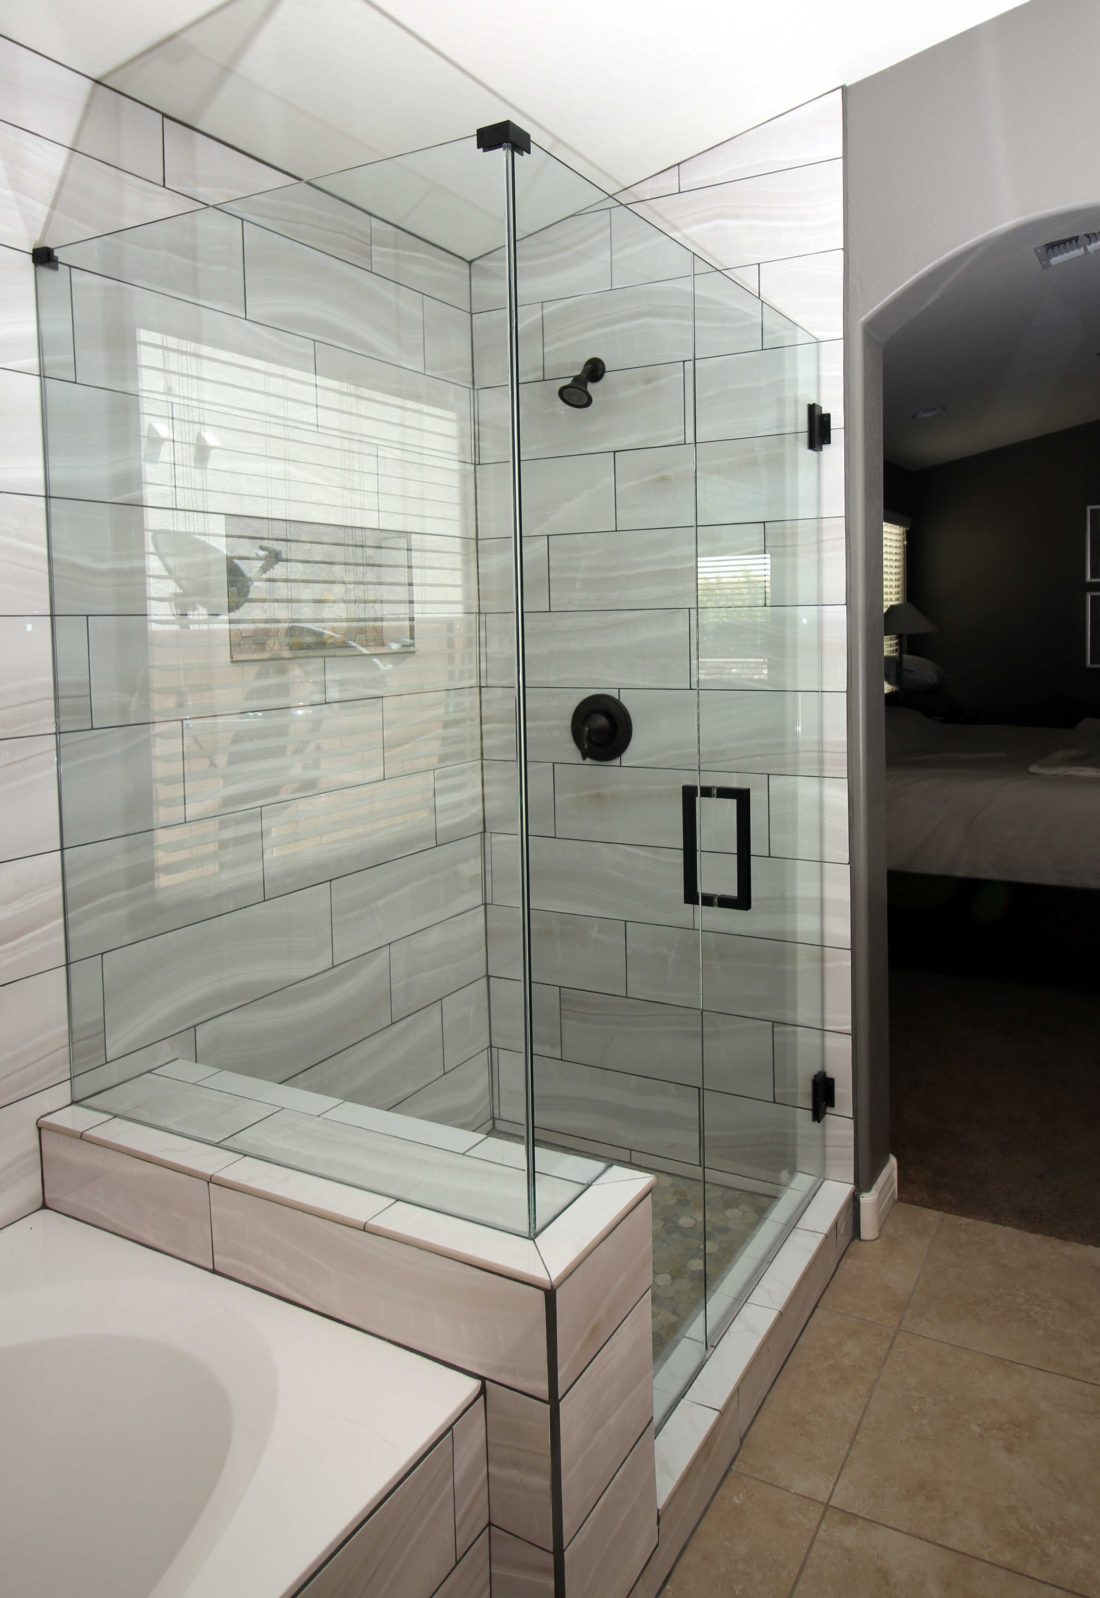 90 degree shower frameless